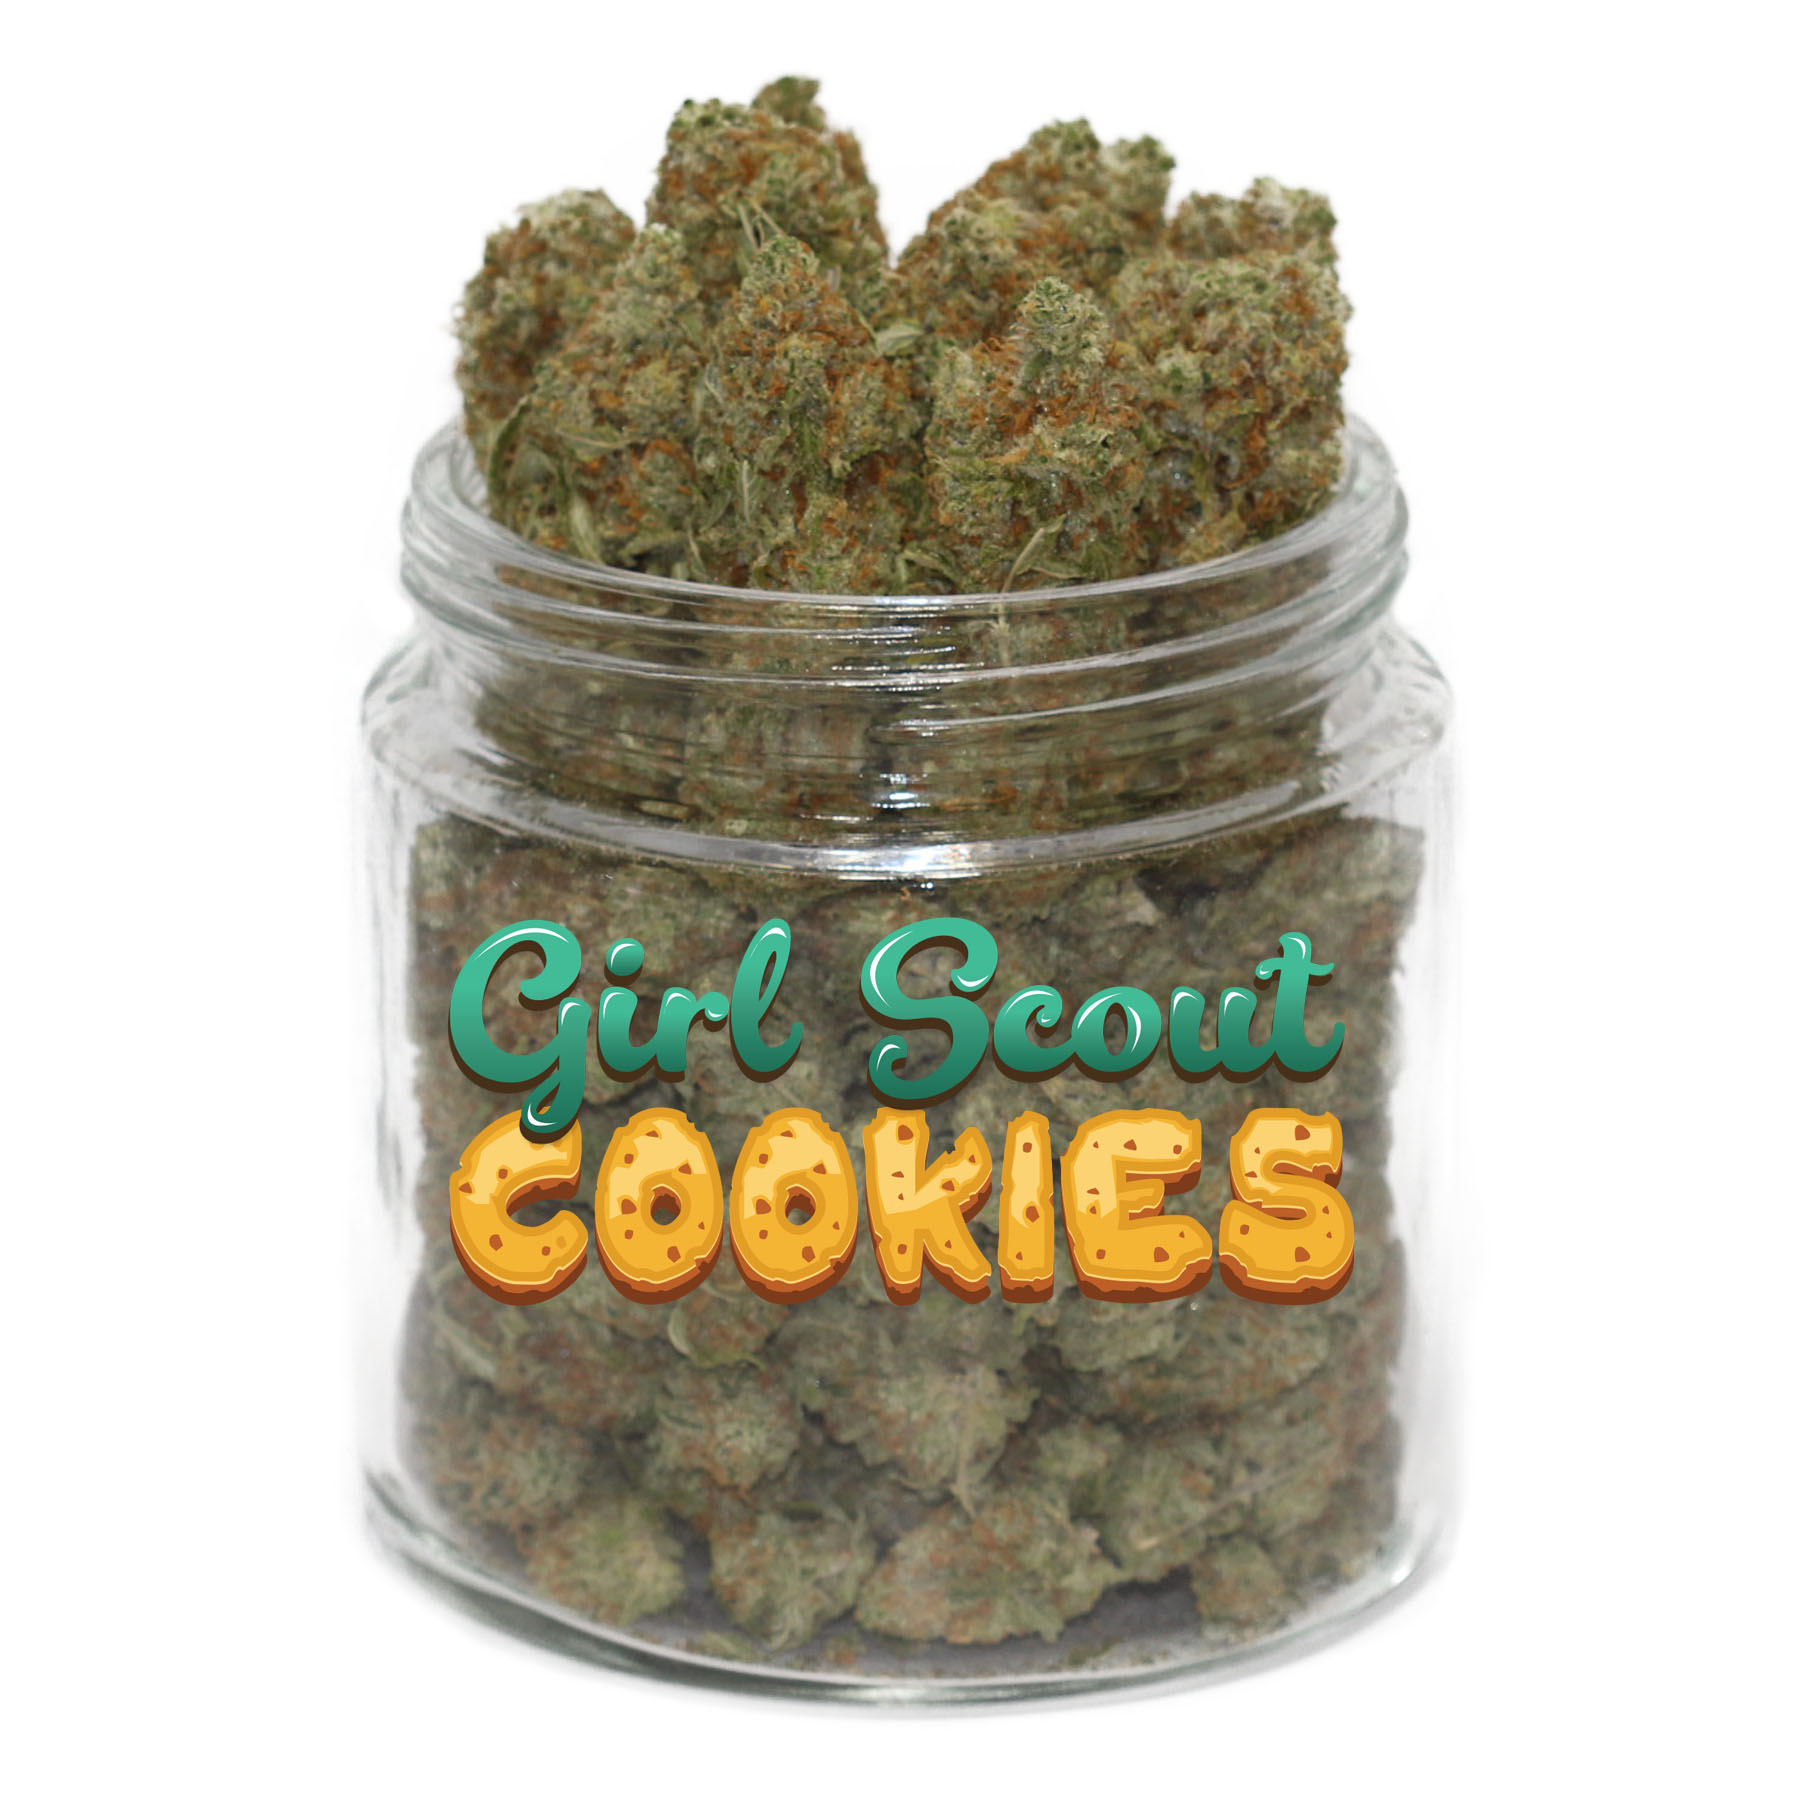 Girl Scout Cookies (GSC) by Get Kush - Image © 2018 Get Kush. All Rights Reserved.